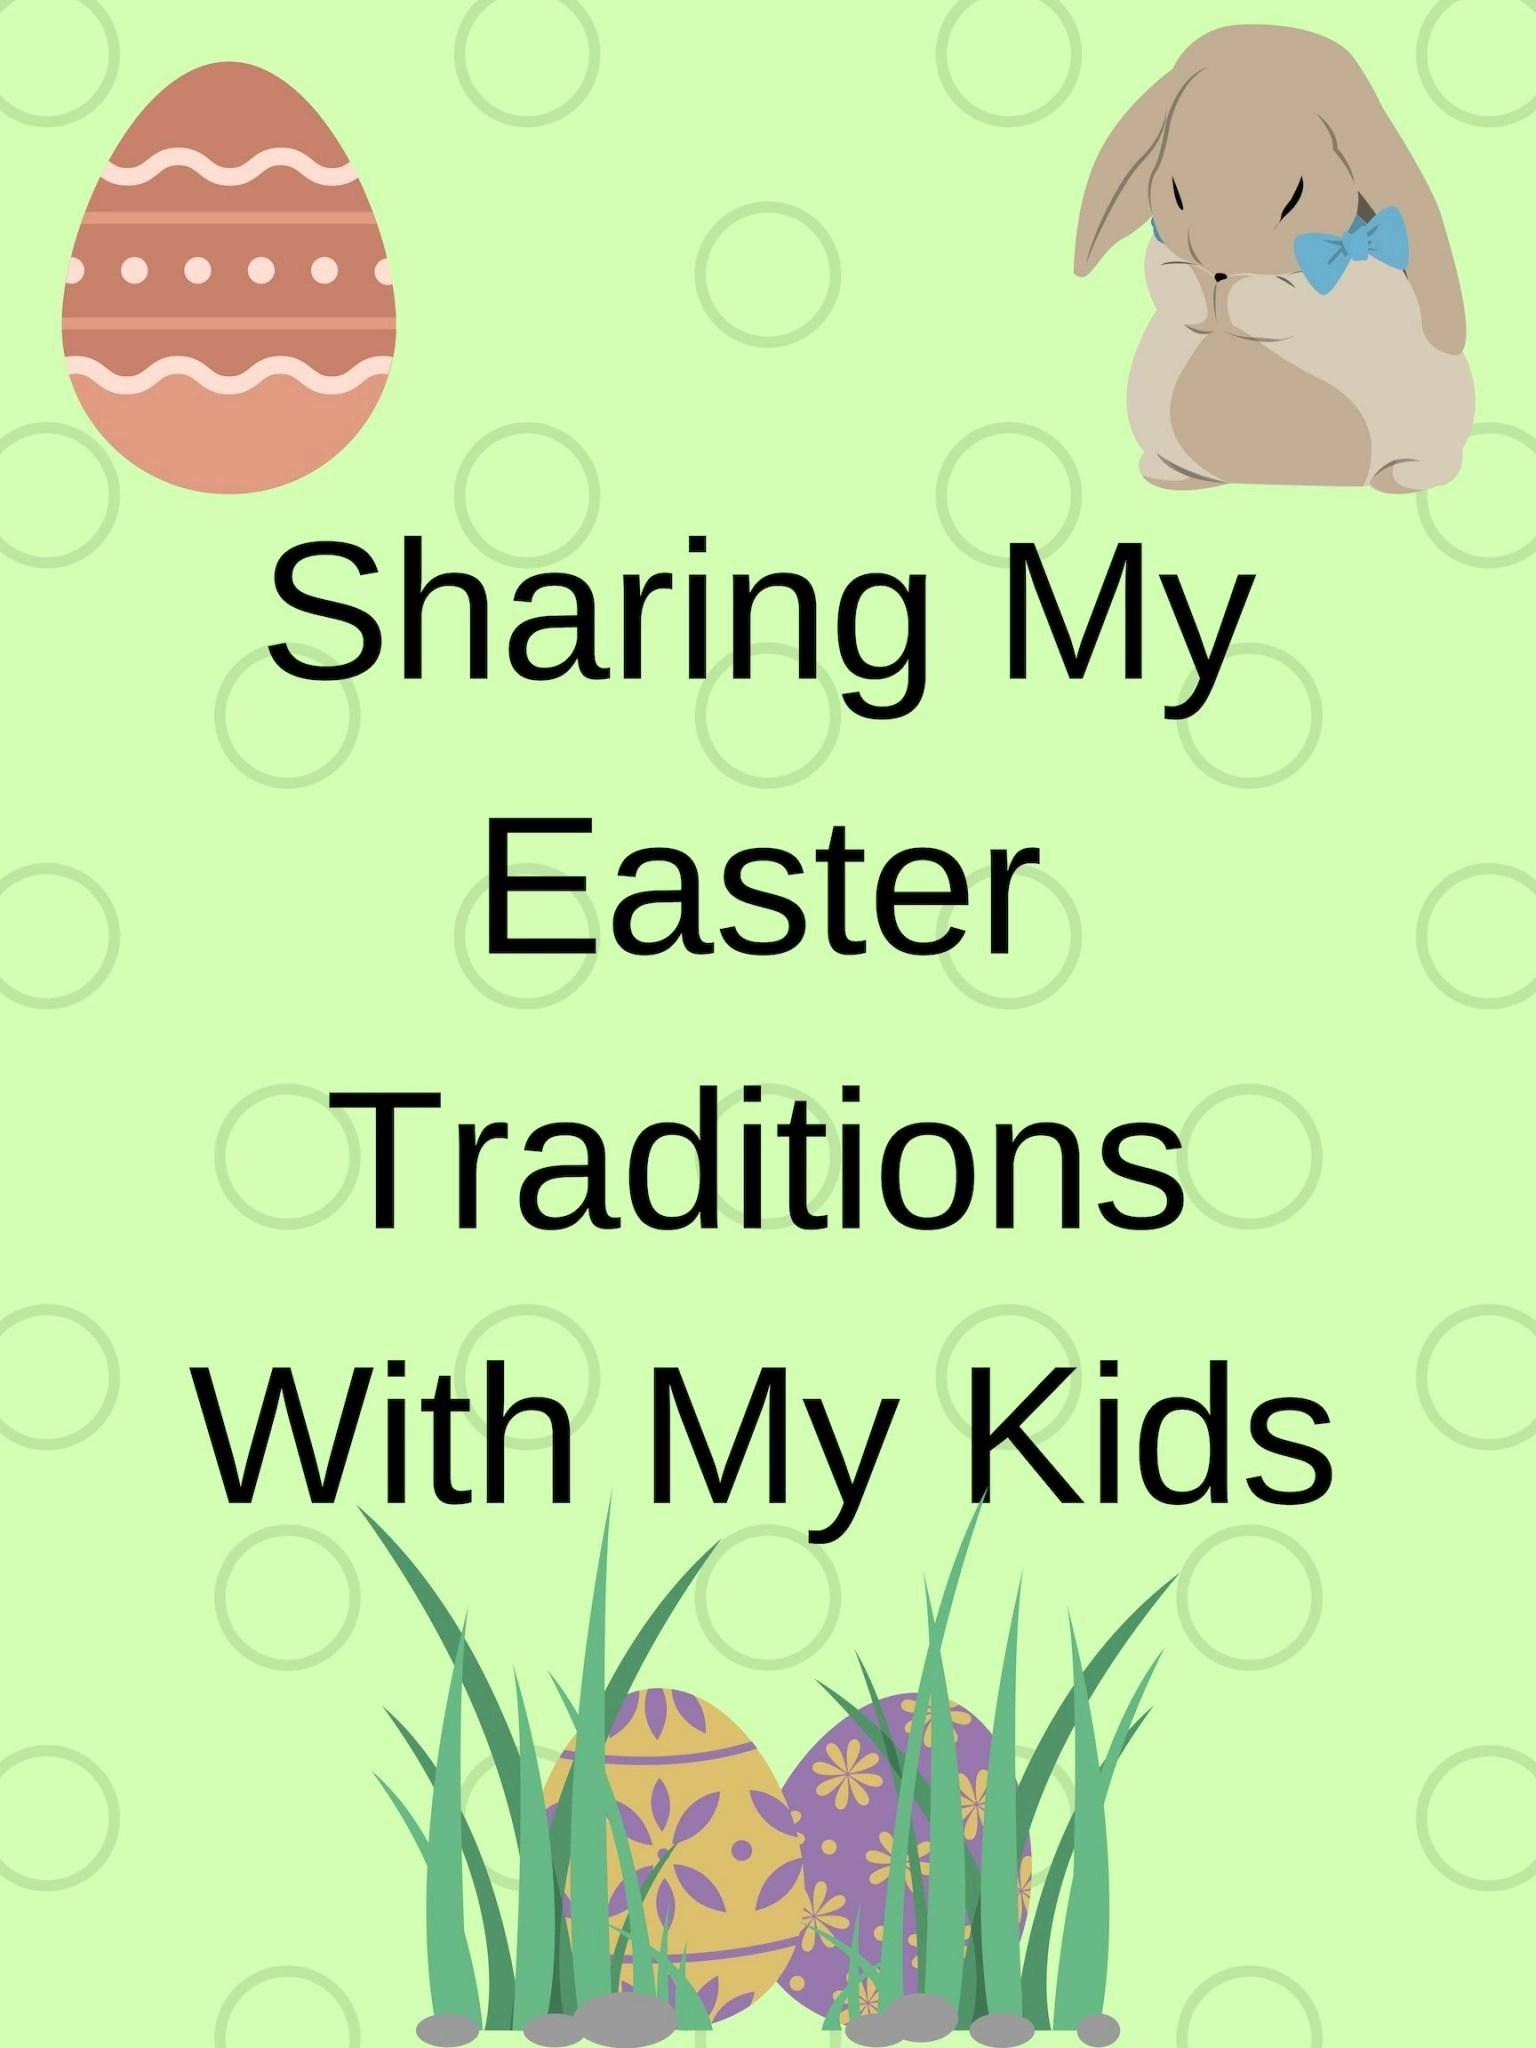 Sharing My Easter Traditions with My Kids